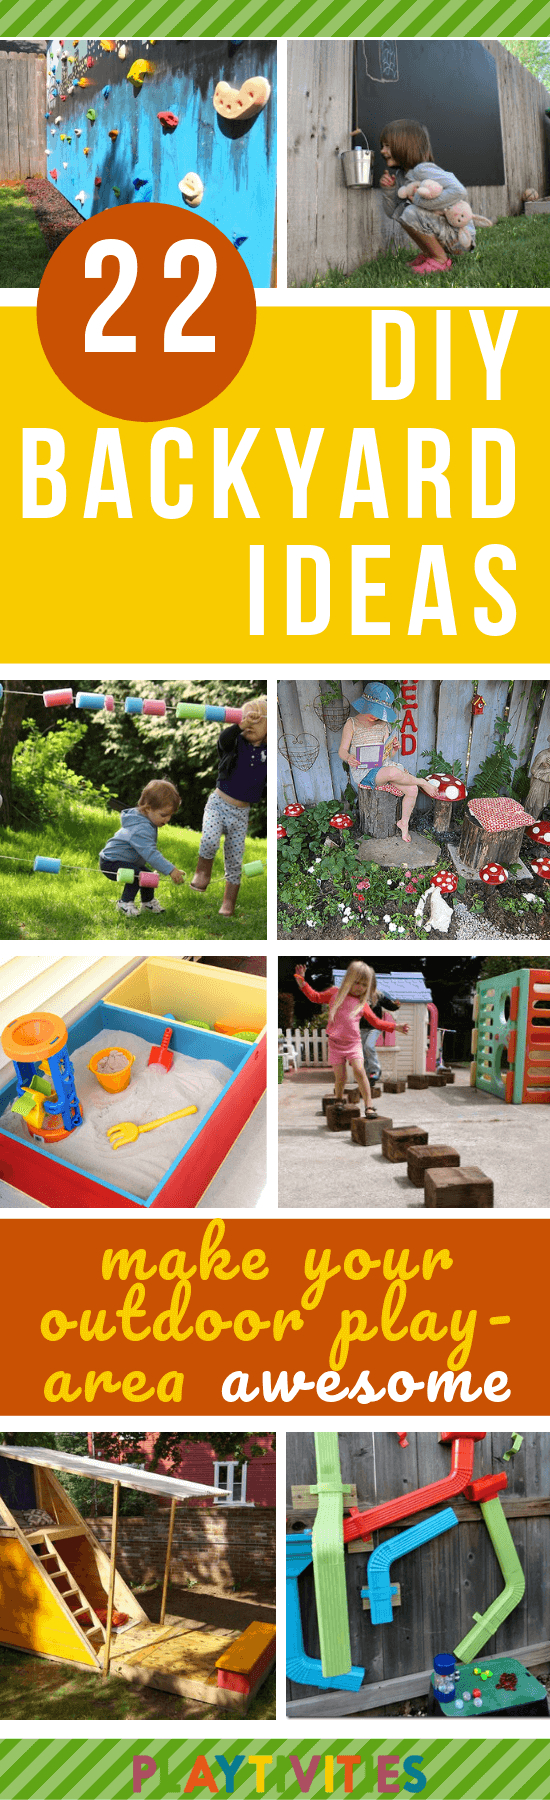 Diy Backyard Ideas For Kids 22 Easy And Cheap Ideas Playtivities within 13 Clever Ideas How to Make Backyard Play Ideas